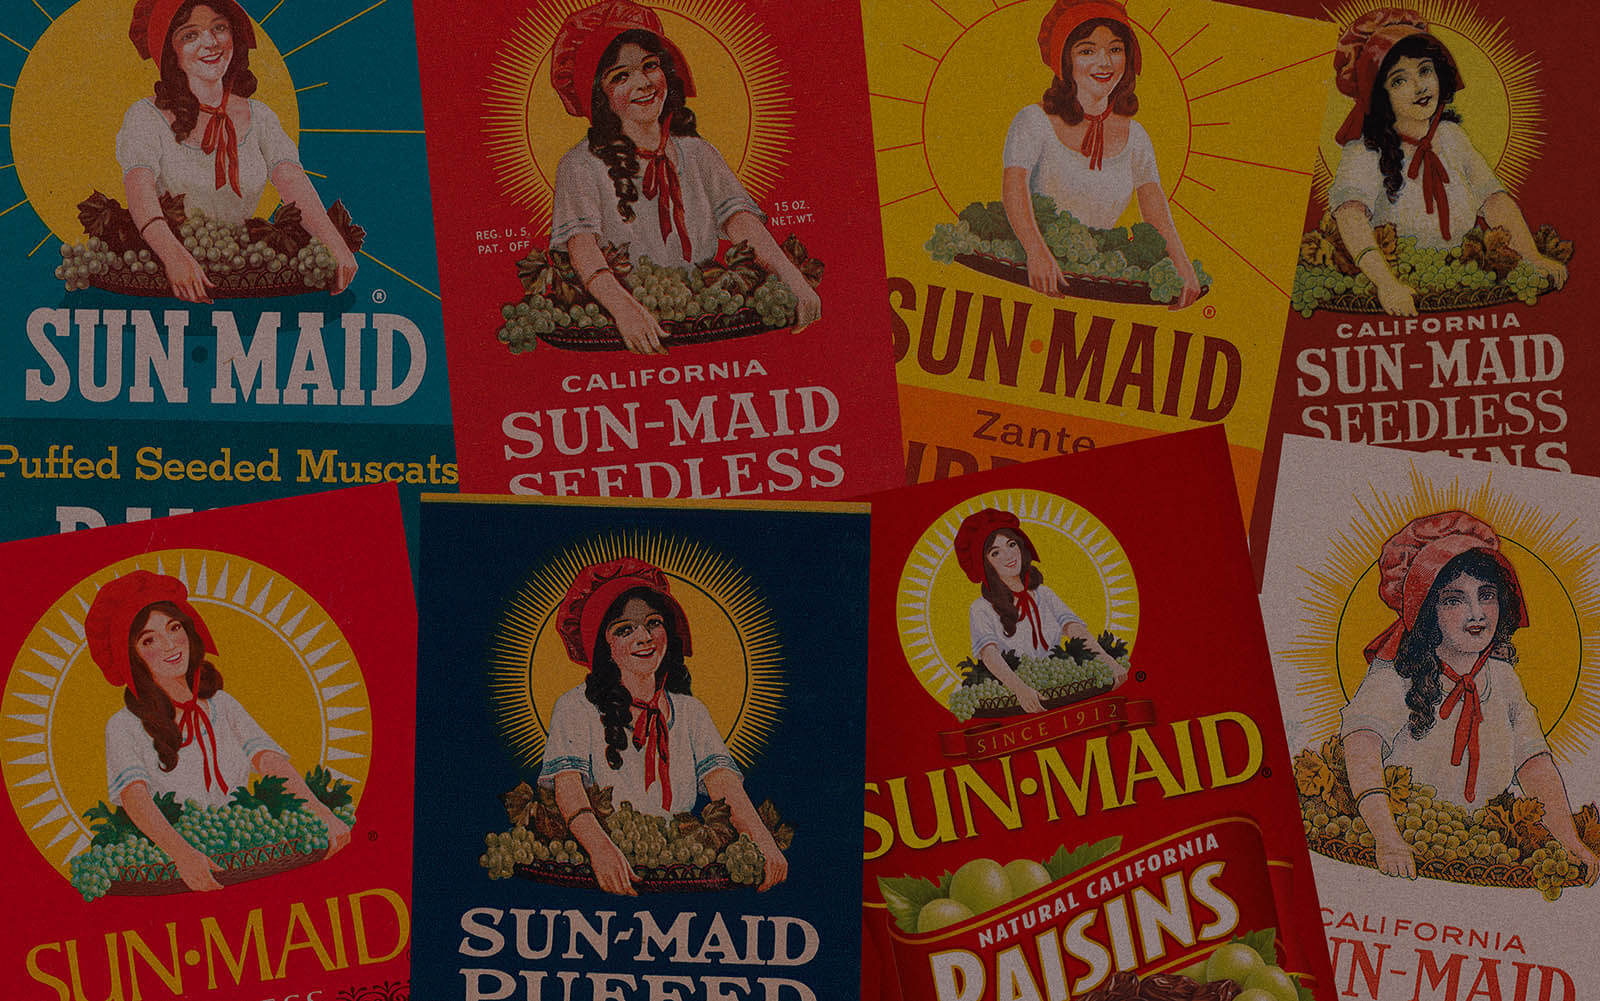 Sun-Maid labels